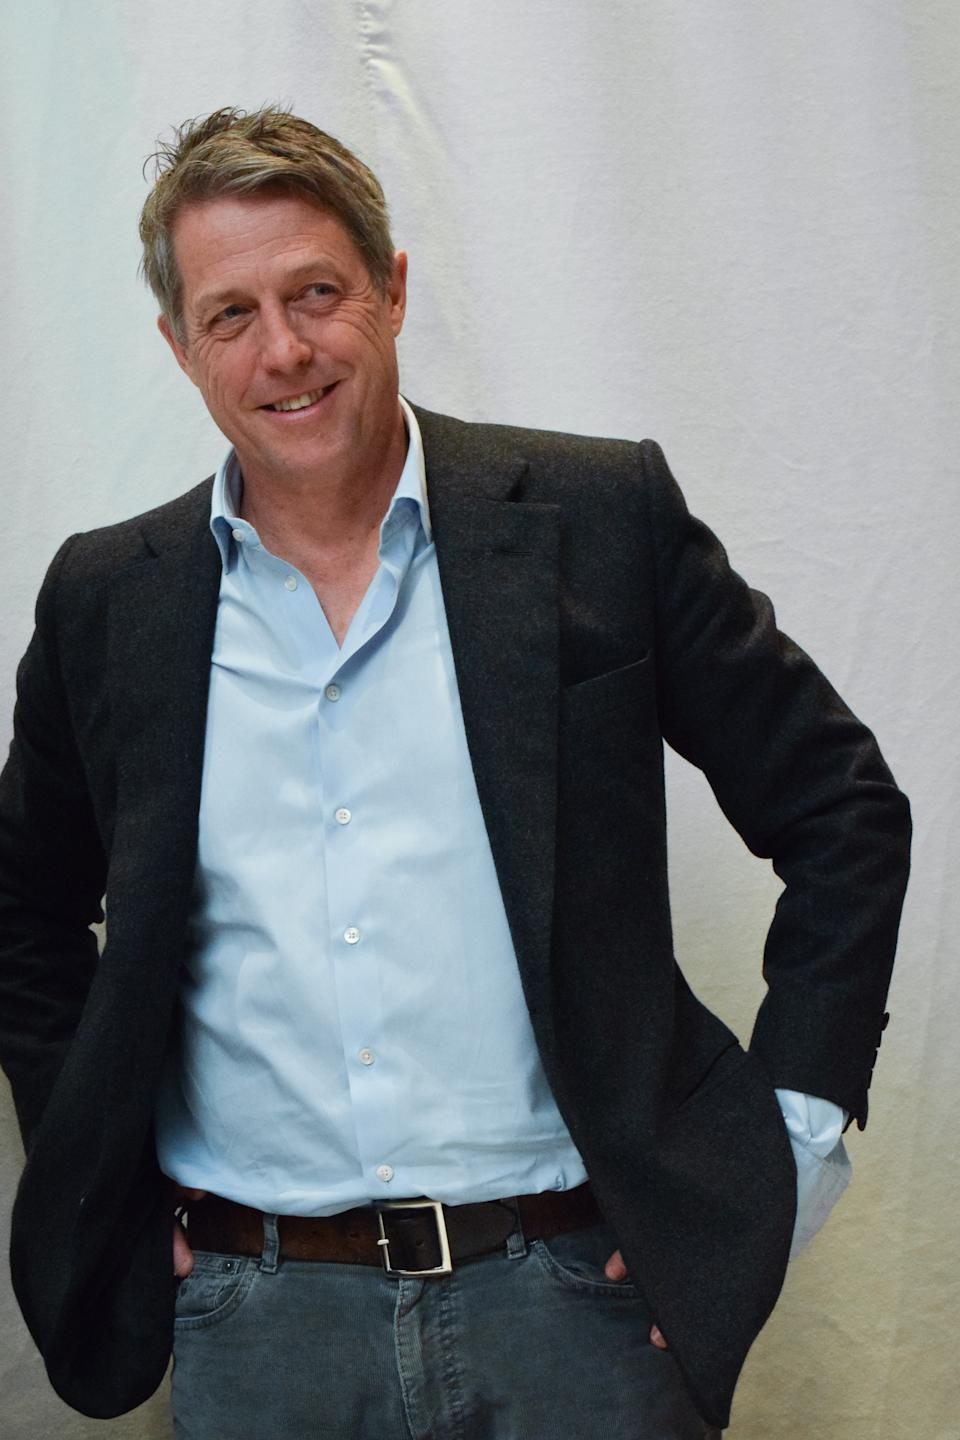 Hugh Grant at the Hollywood Foreign Press Association press conference for